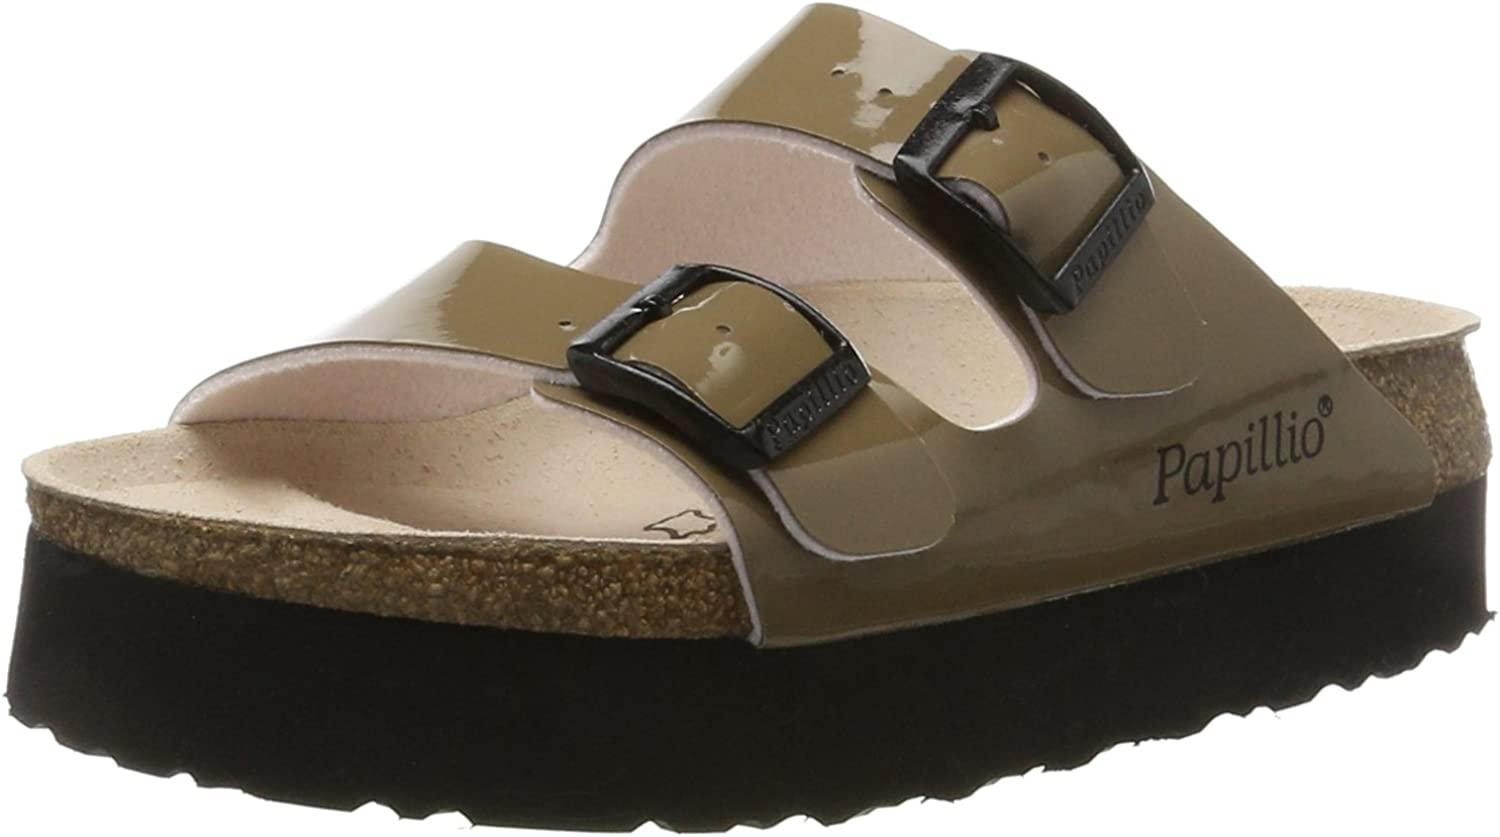 Arizona Birko-Flor Two-Tone Patent Mud